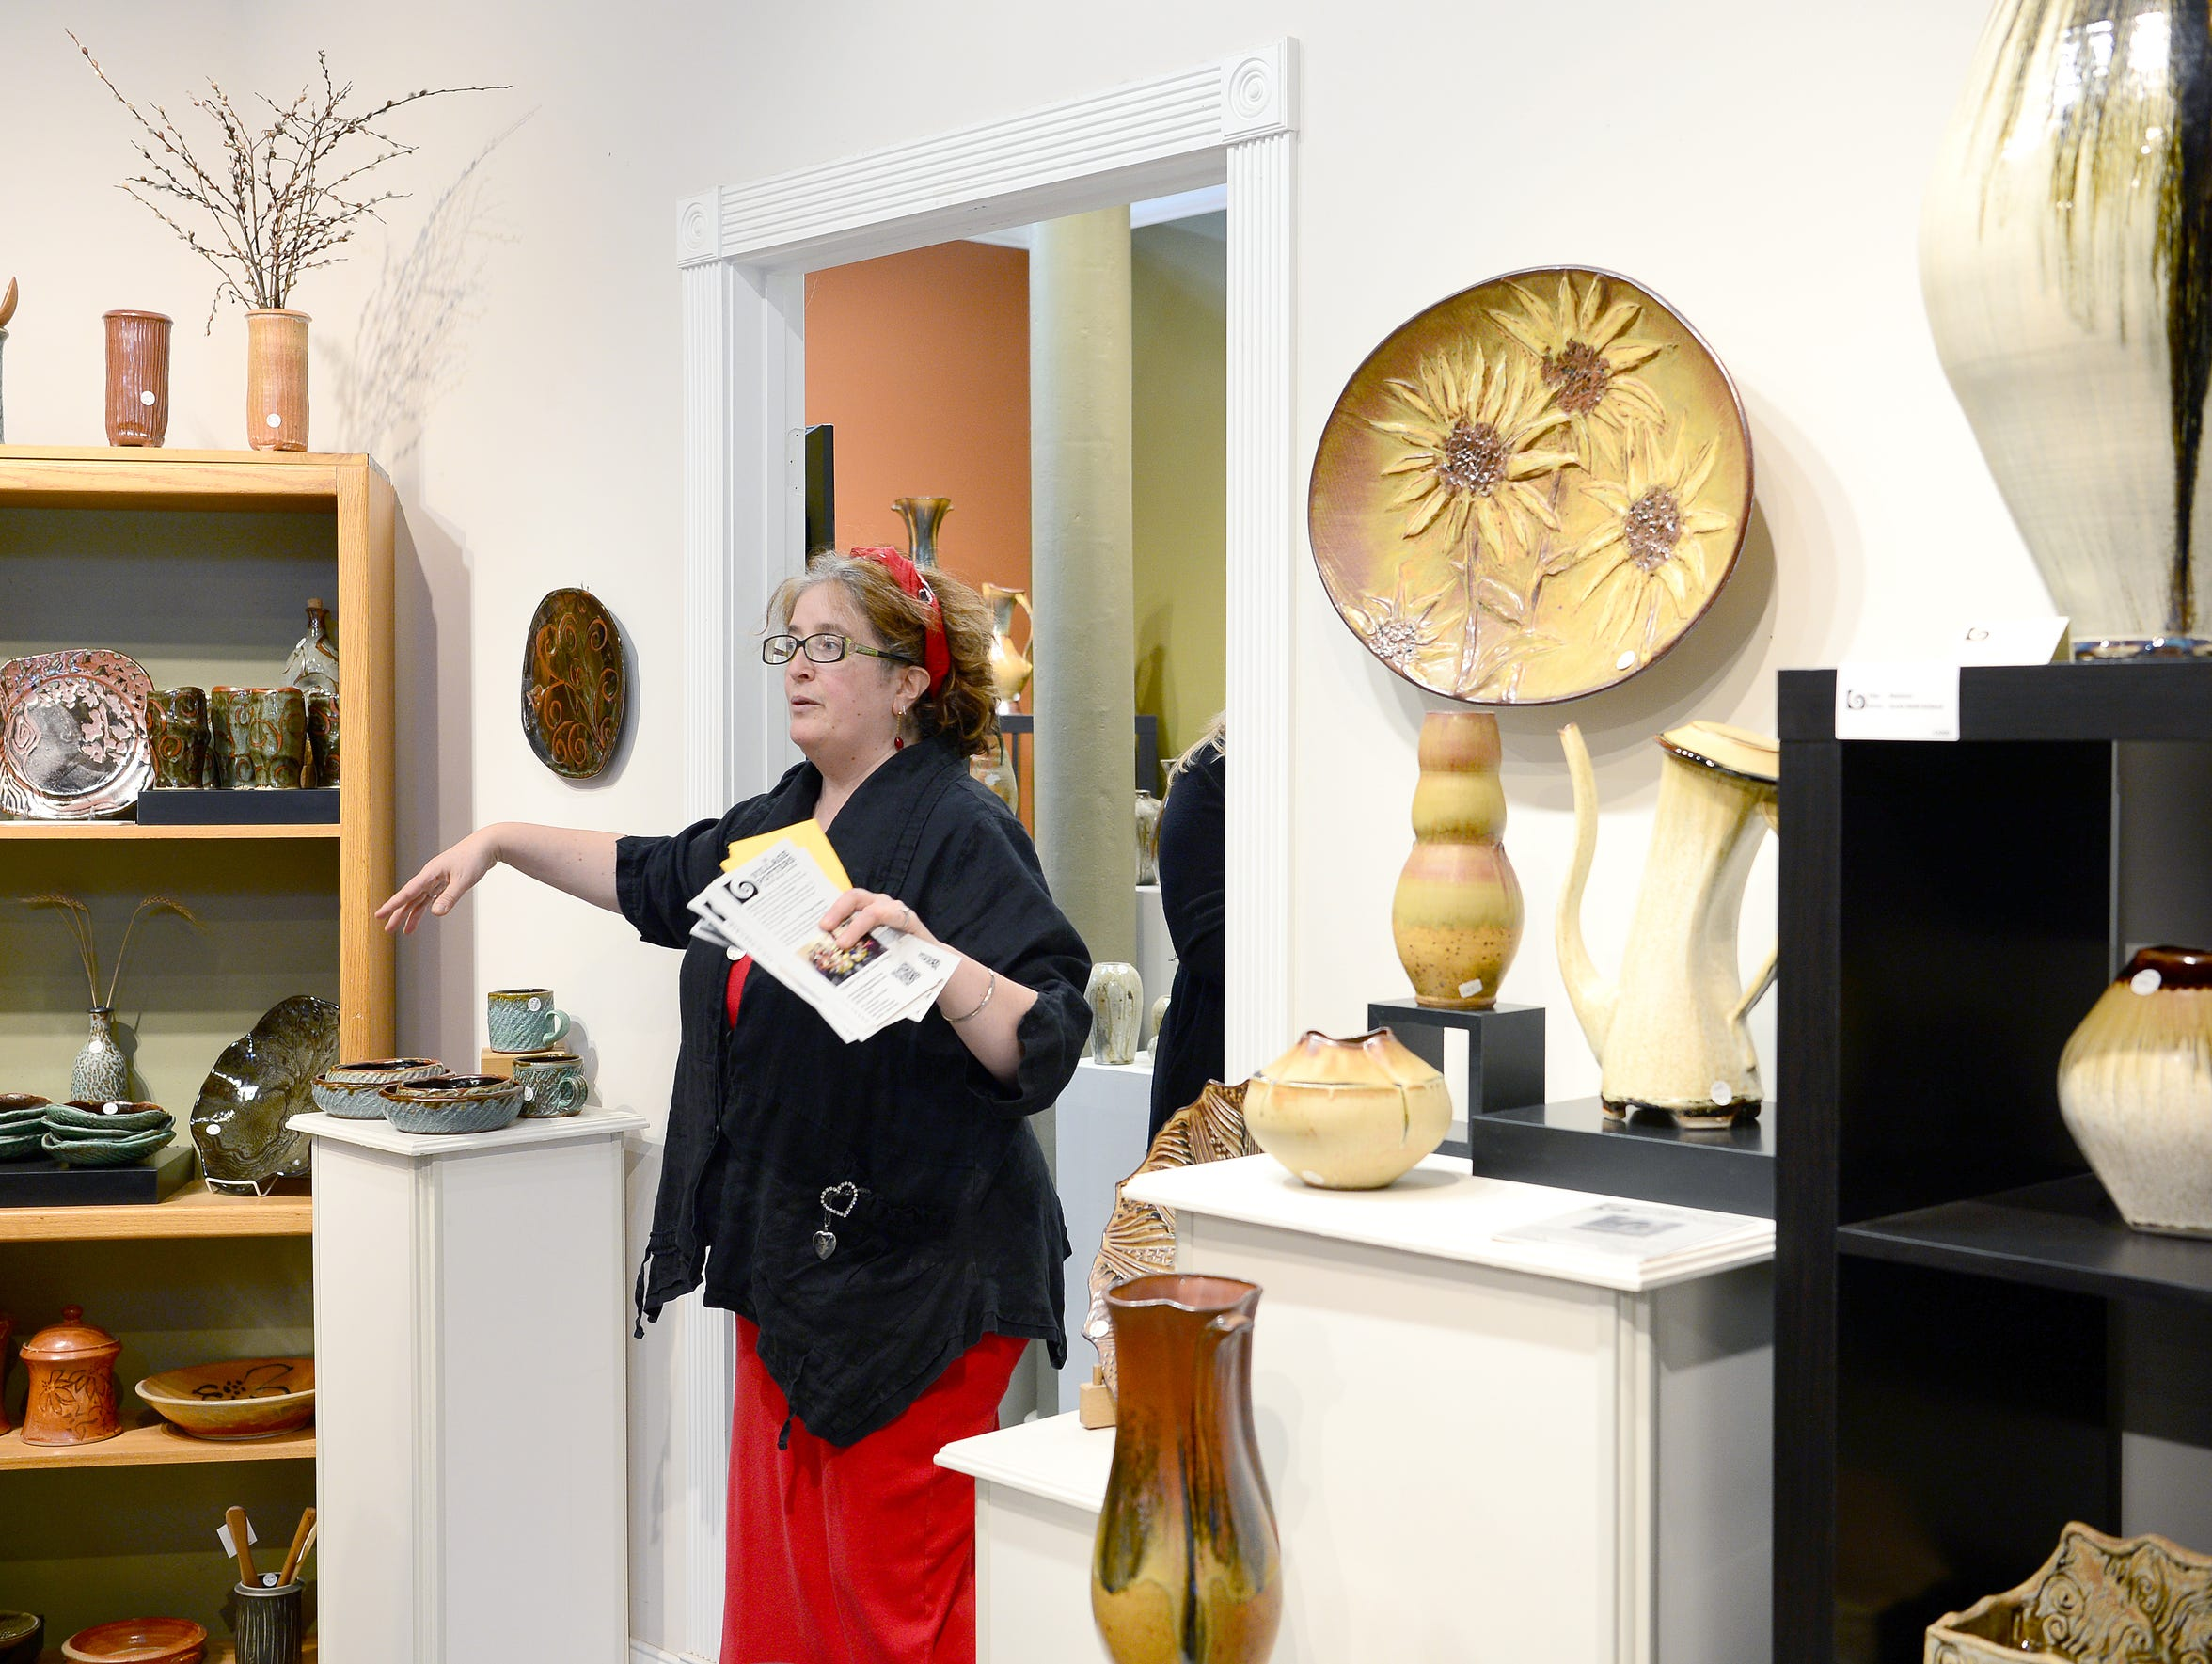 Lori Theriault gives a tour of The Village Potters